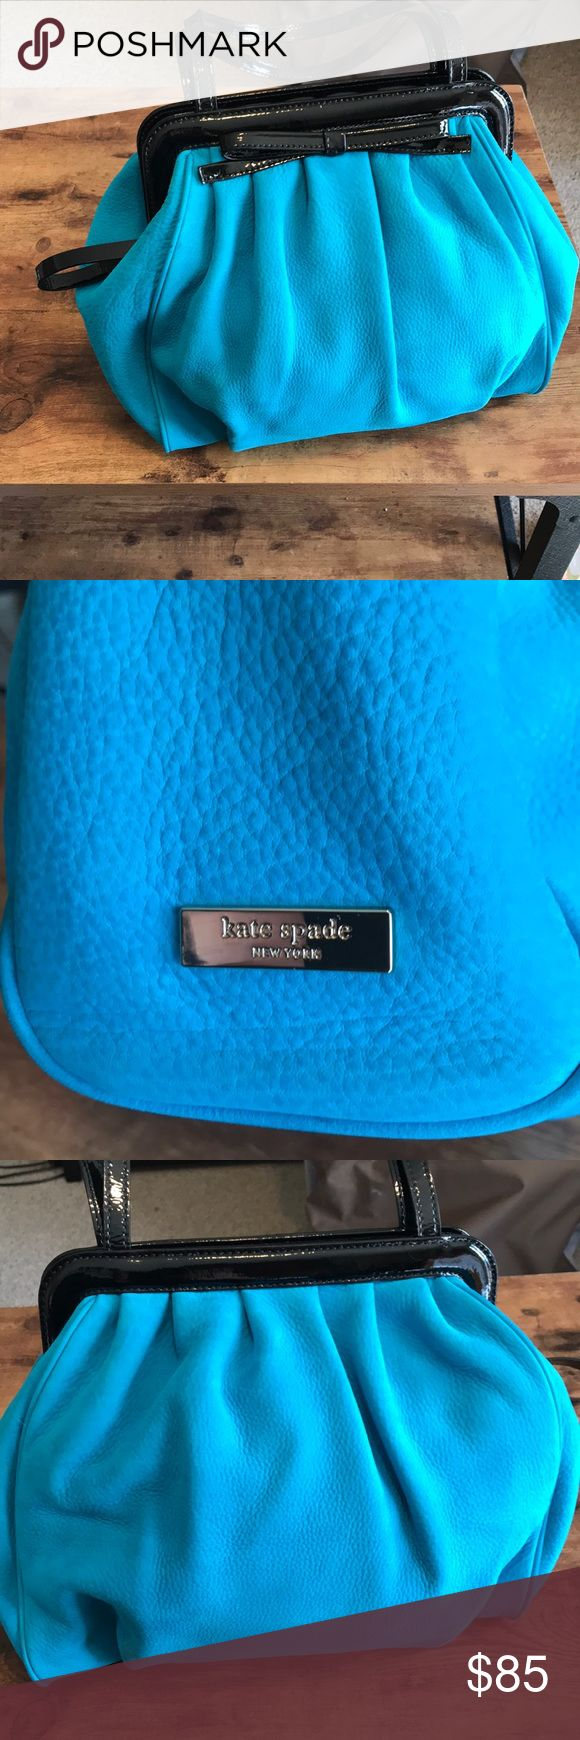 Kate spade turquoise blue suede purse Kate spade turquoise blue purse in suede. Accented with black patent bow and trim. Great condition. A few signs of wear but hardly noticeable (pictured). kate spade Bags Shoulder Bags